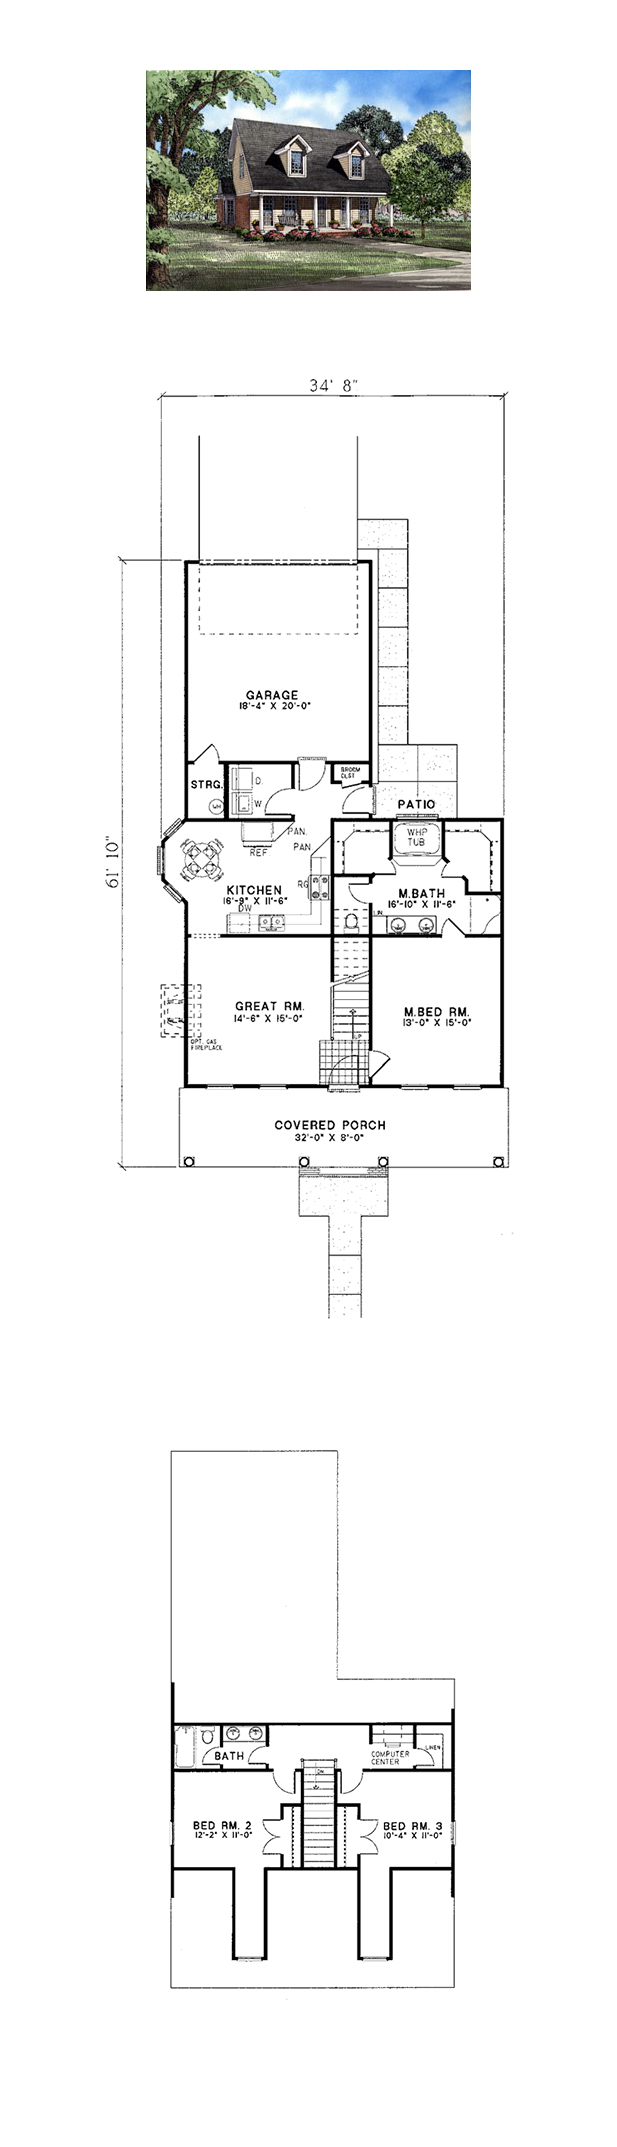 Country Style House Plan 82030 With 3 Bed 2 Bath 2 Car Garage Country Style House Plans House Plans Cape Cod House Plans